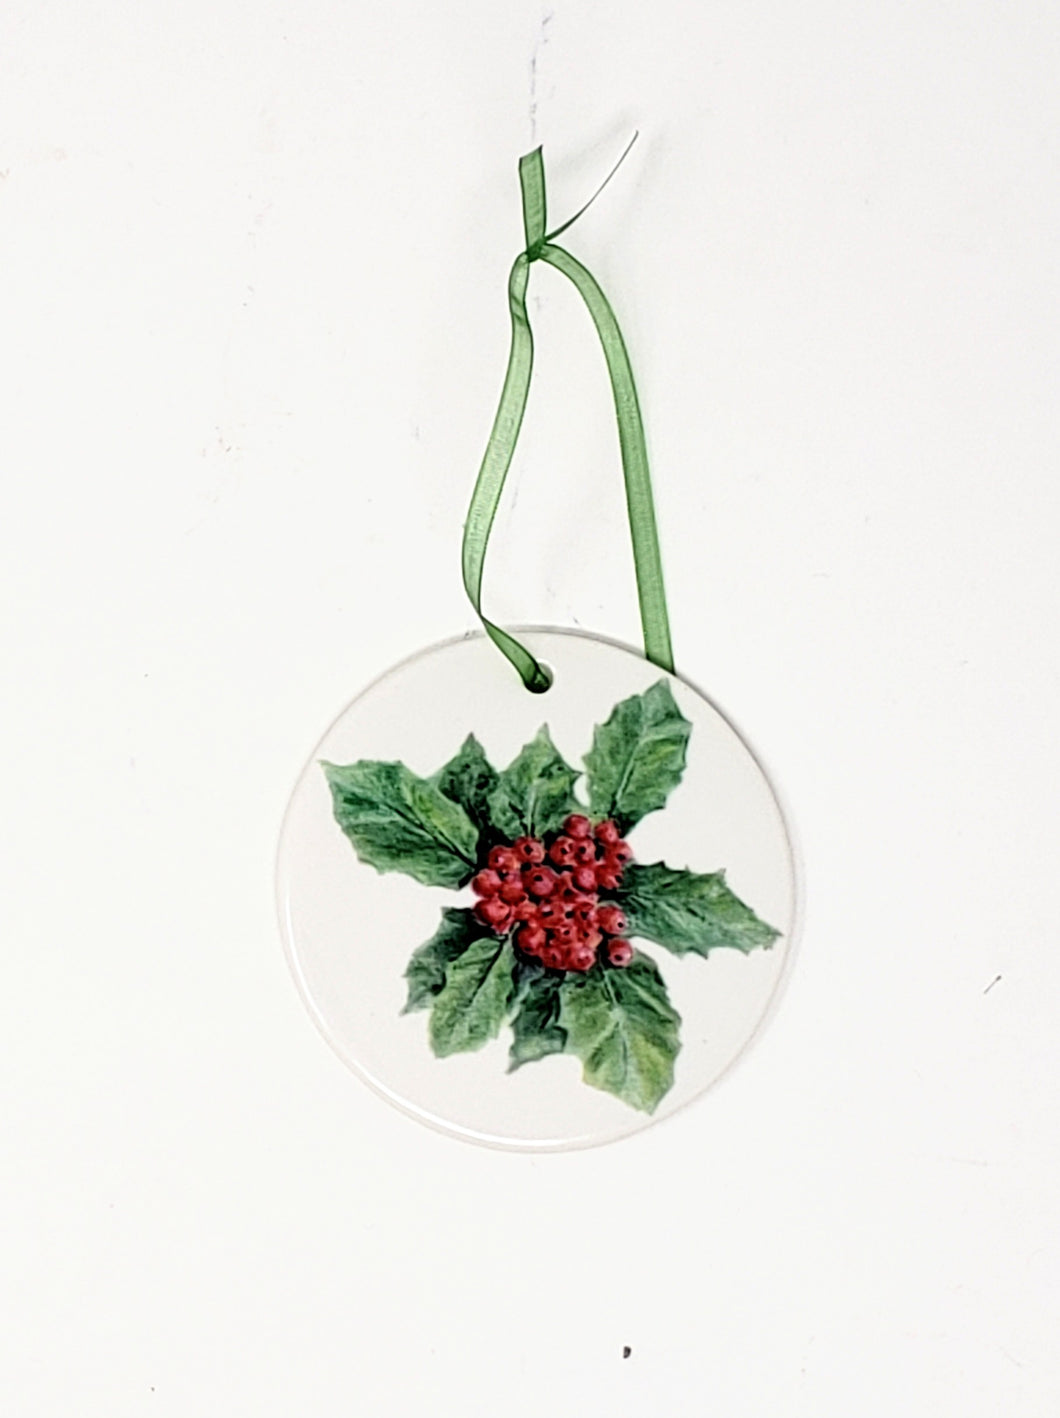 Holly Christmas Ornament, Porcelain Christmas Ornaments, small Christmas gift,  small gift for mom, stocking stuffer, holly art - Leigh Barry Watercolors